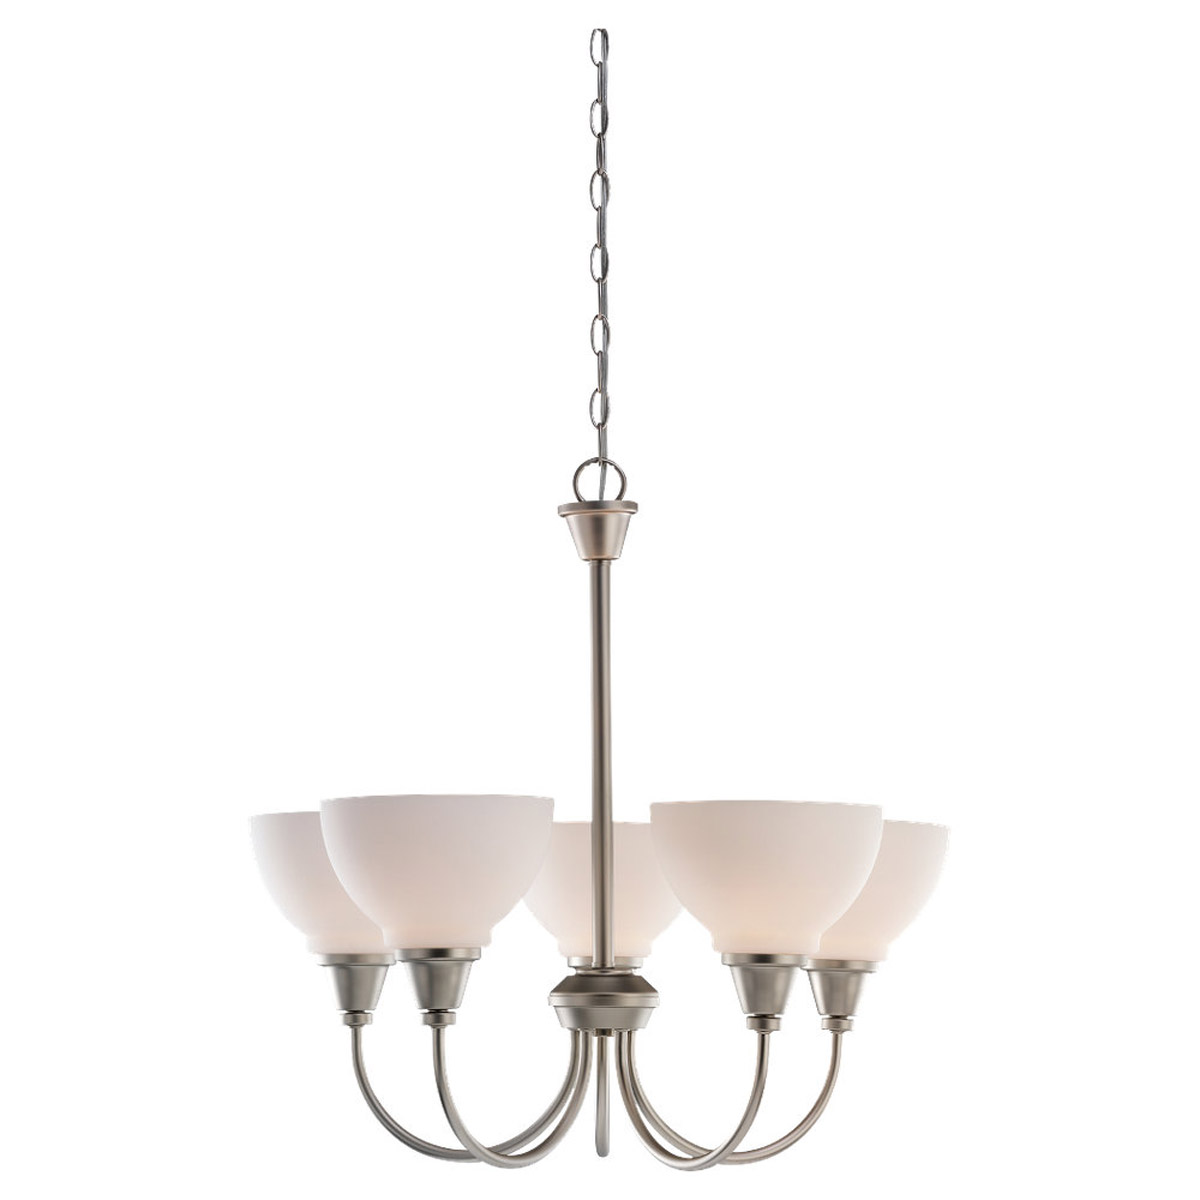 Sea Gull Lighting Sydney 5 Light Chandelier in Golden Pewter 31746-853